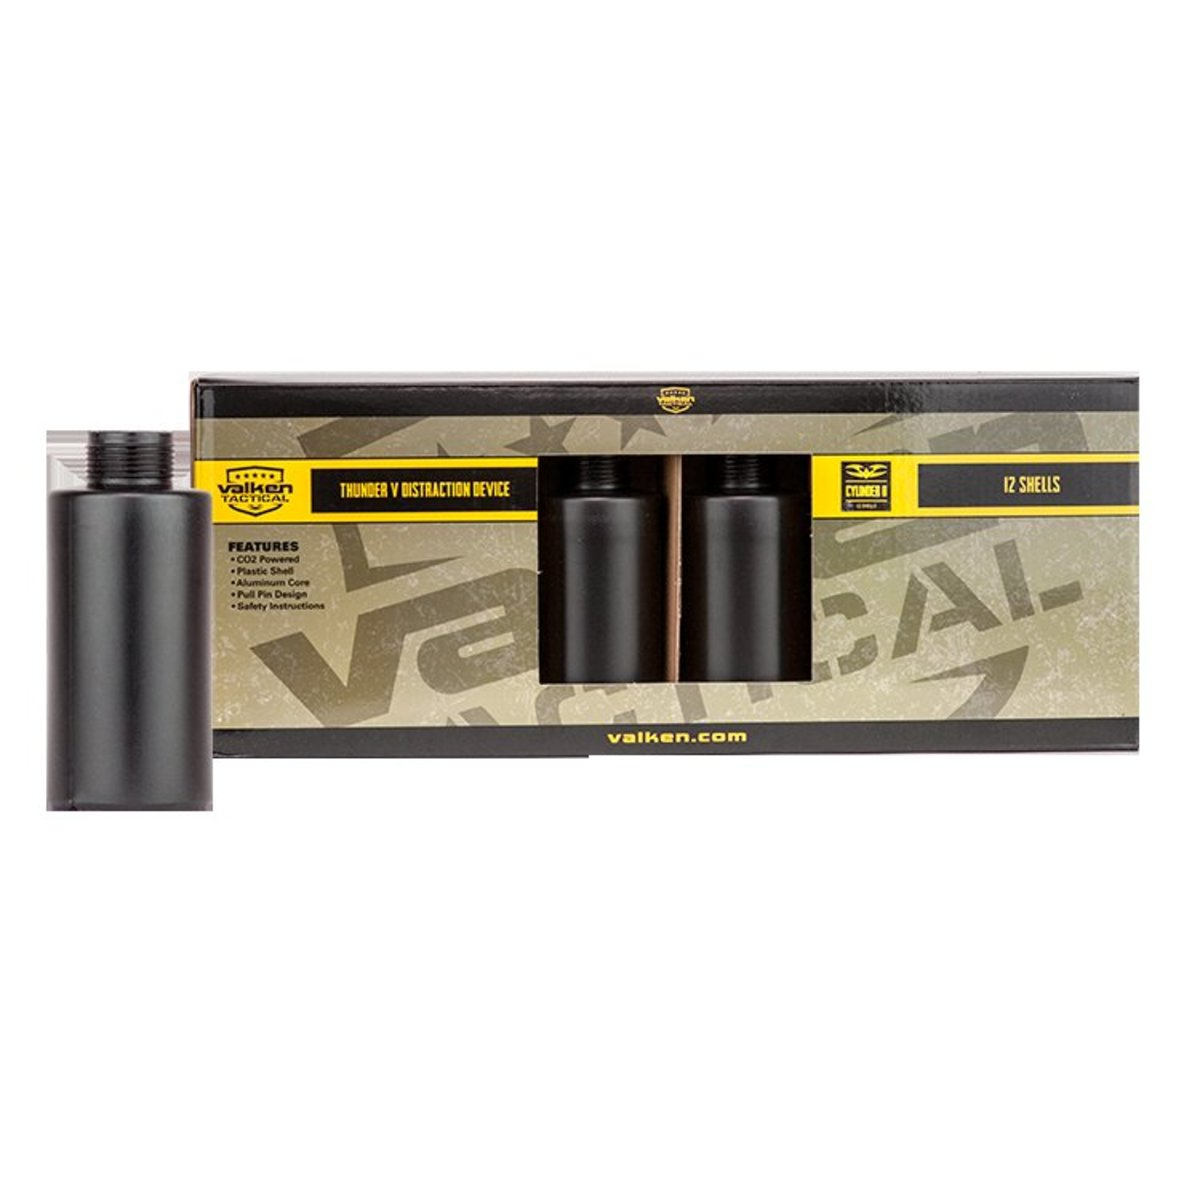 View larger image of V Tactical Thunder B 12 Pack - Shell Only